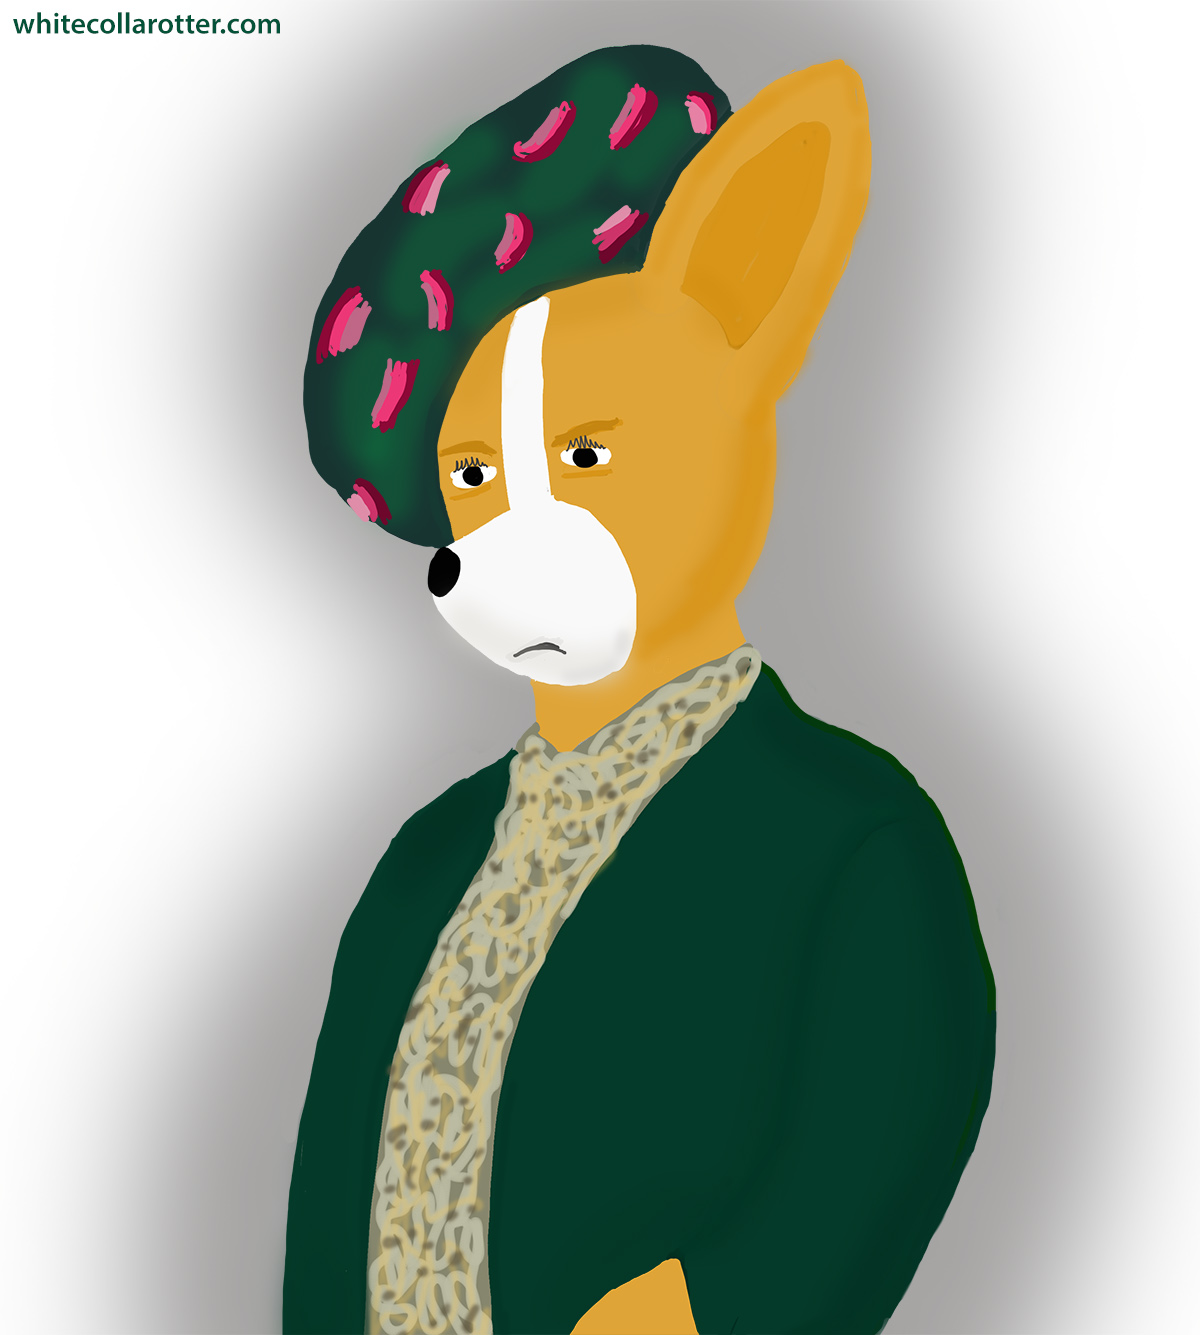 Downton Corgi